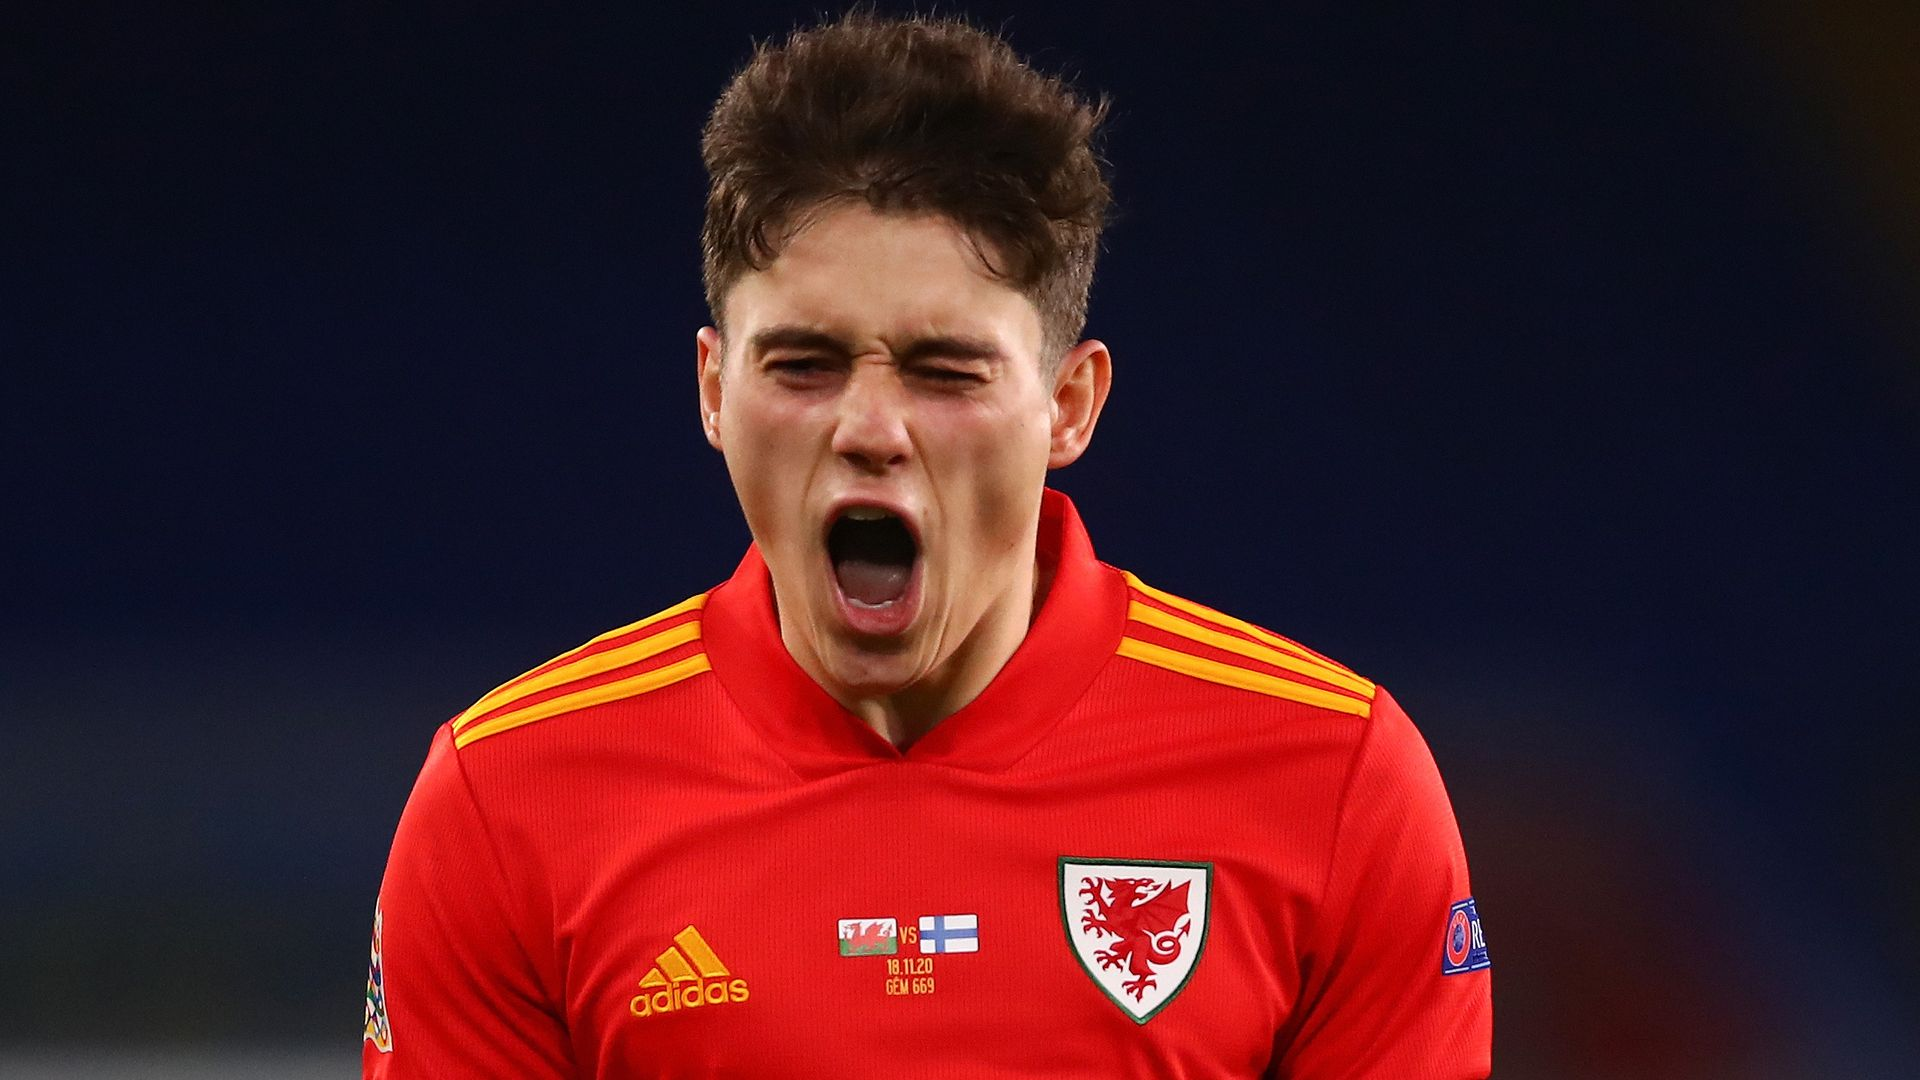 Wales 3-1 Finland highlights